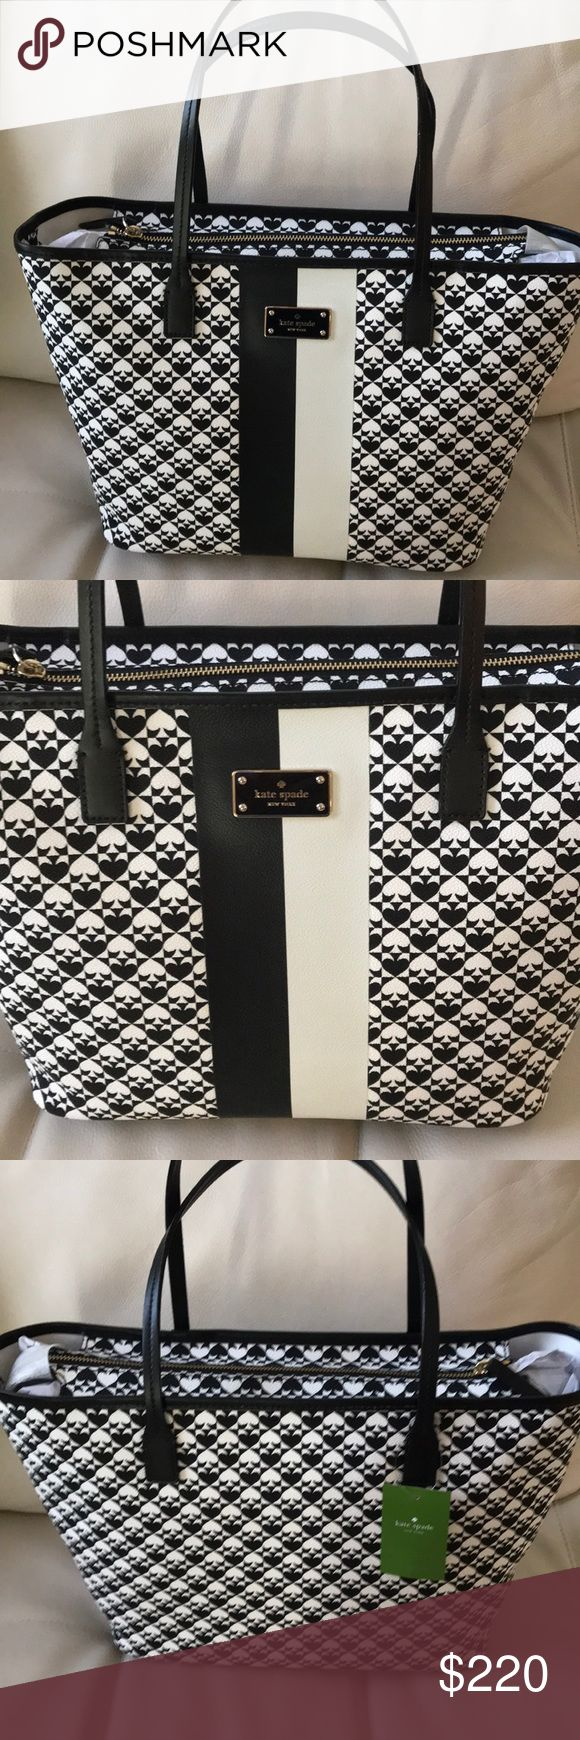 """NWT BLACK KATE SPADE SMALL MARGARETA PENN PLACE Brand: Kate spade small Margareta  Condition: New with tag 